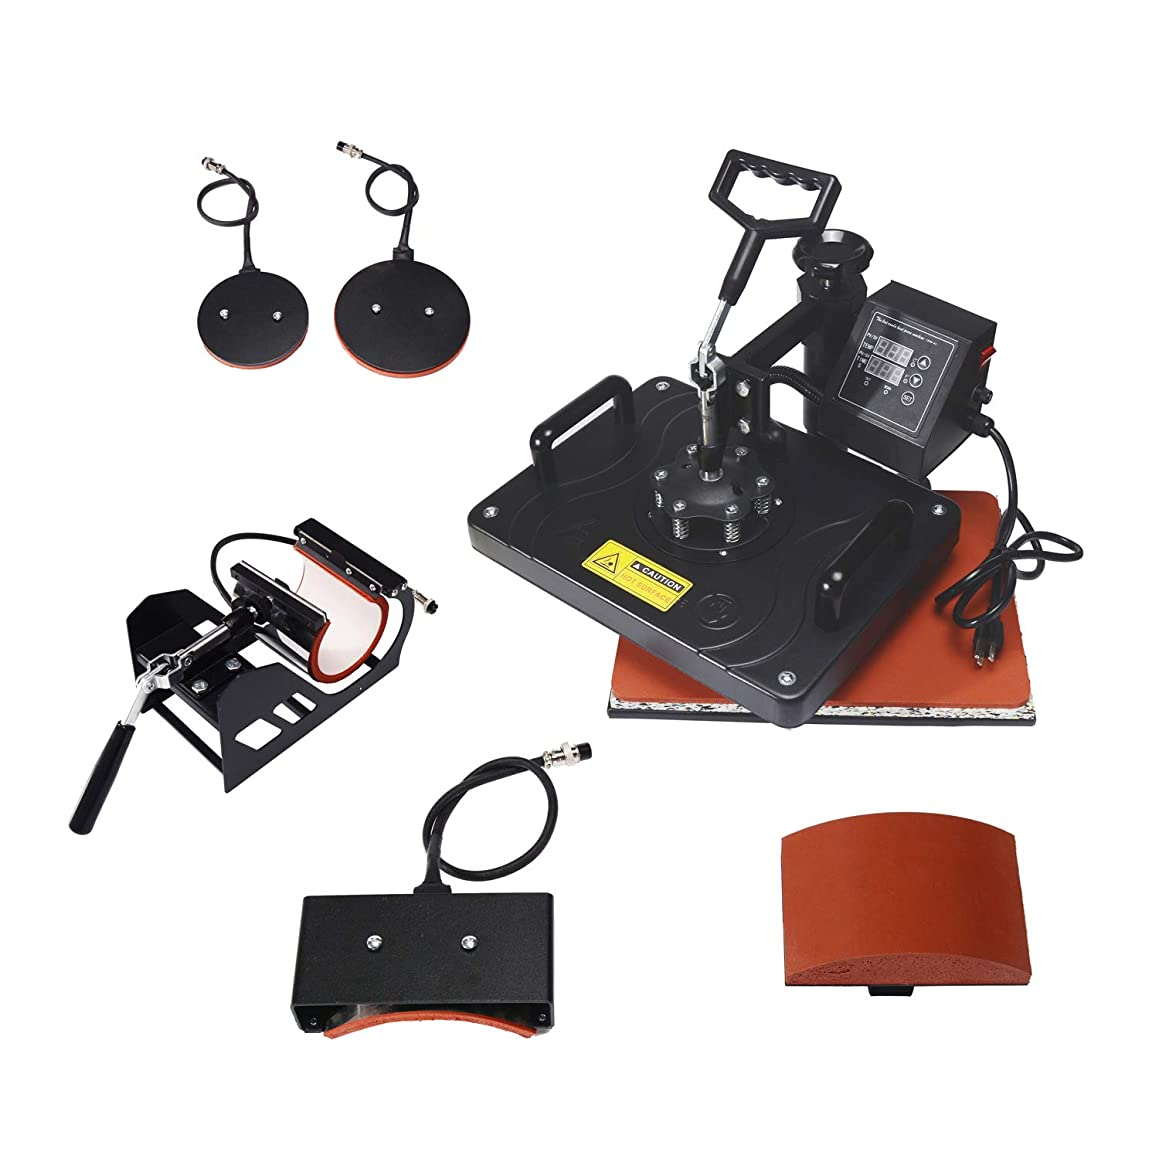 Eseres Heat Press Machine for T Shirts 5 in 1 Combo Mug Heat Sublimation Transfer Press 12 x 15''